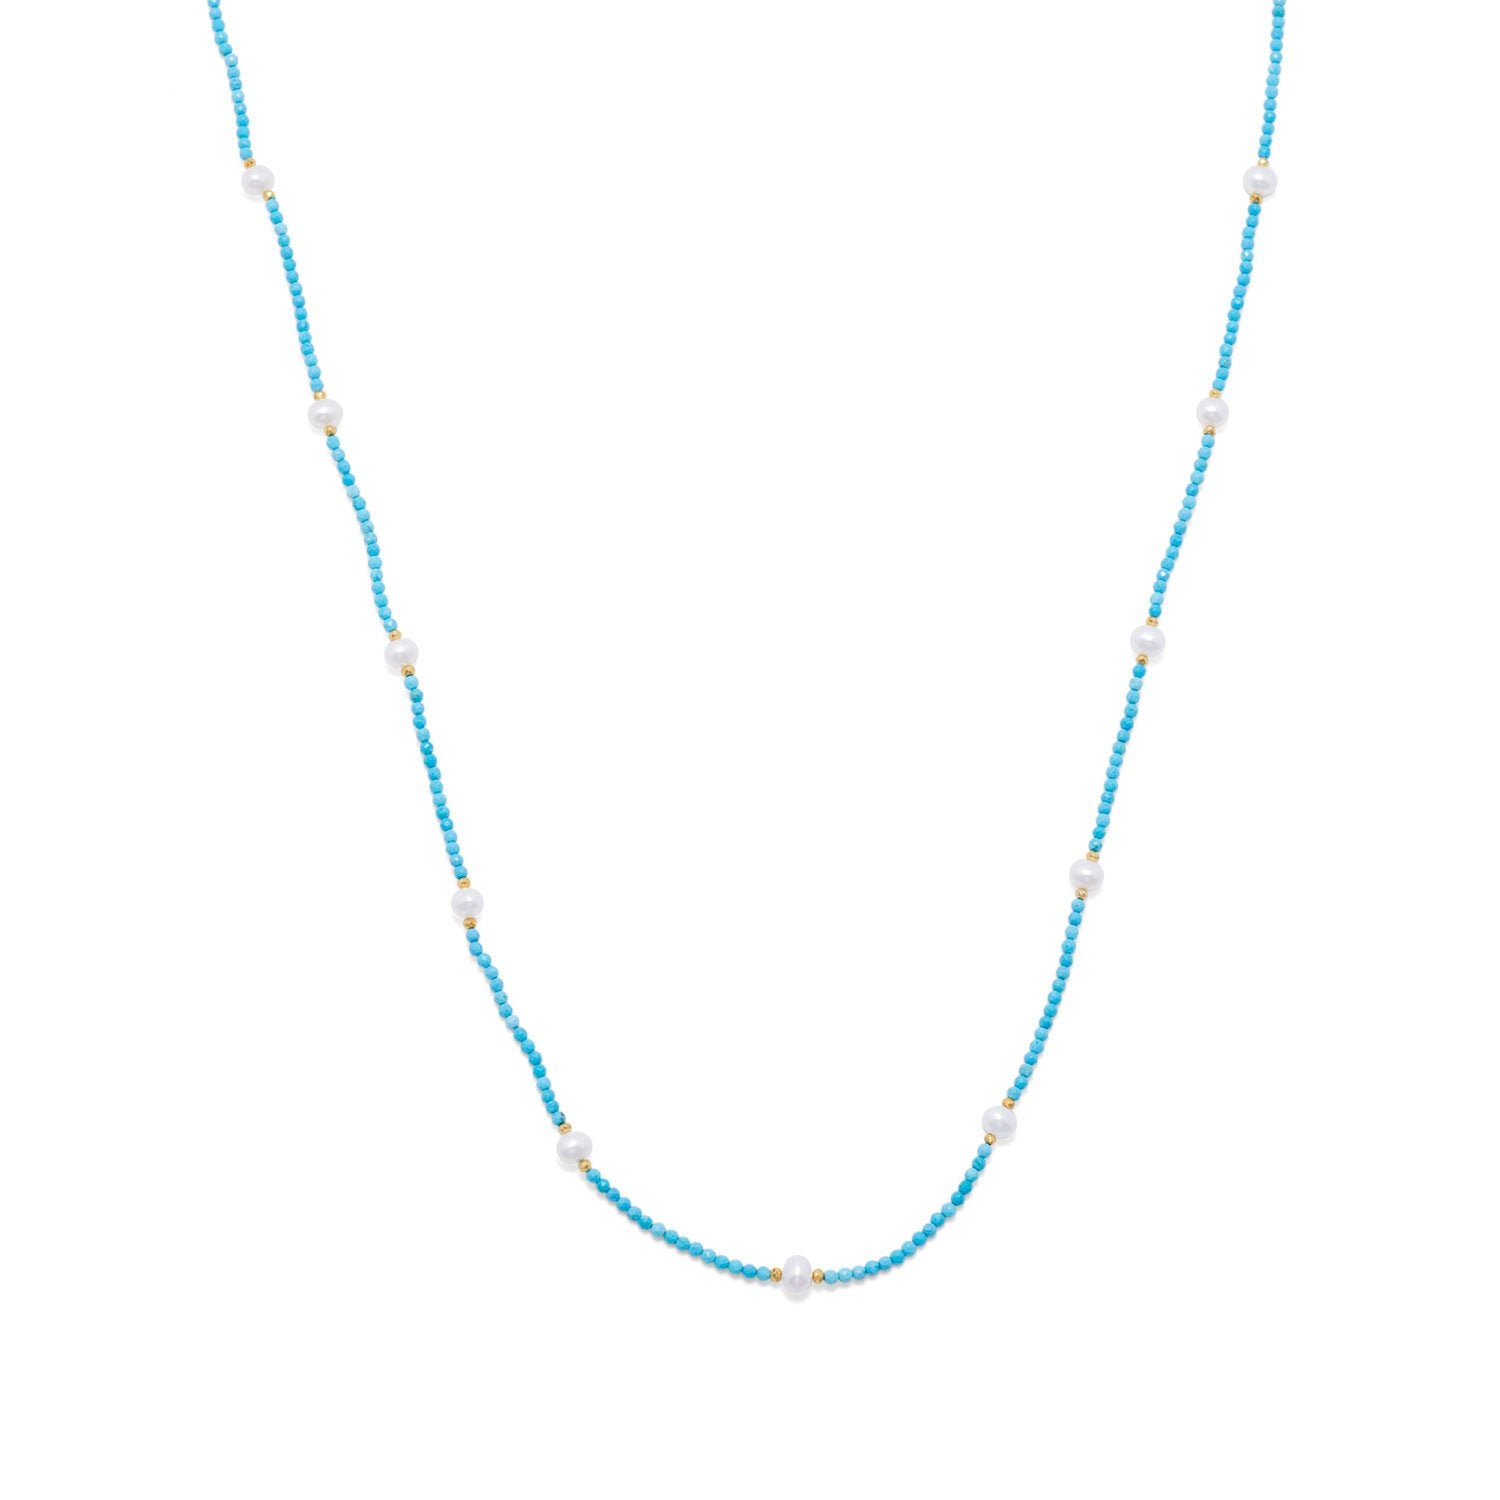 Endless Design Turquoise Magnesite and Cultured Freshwater Pearl Necklace - the-southern-magnolia-too